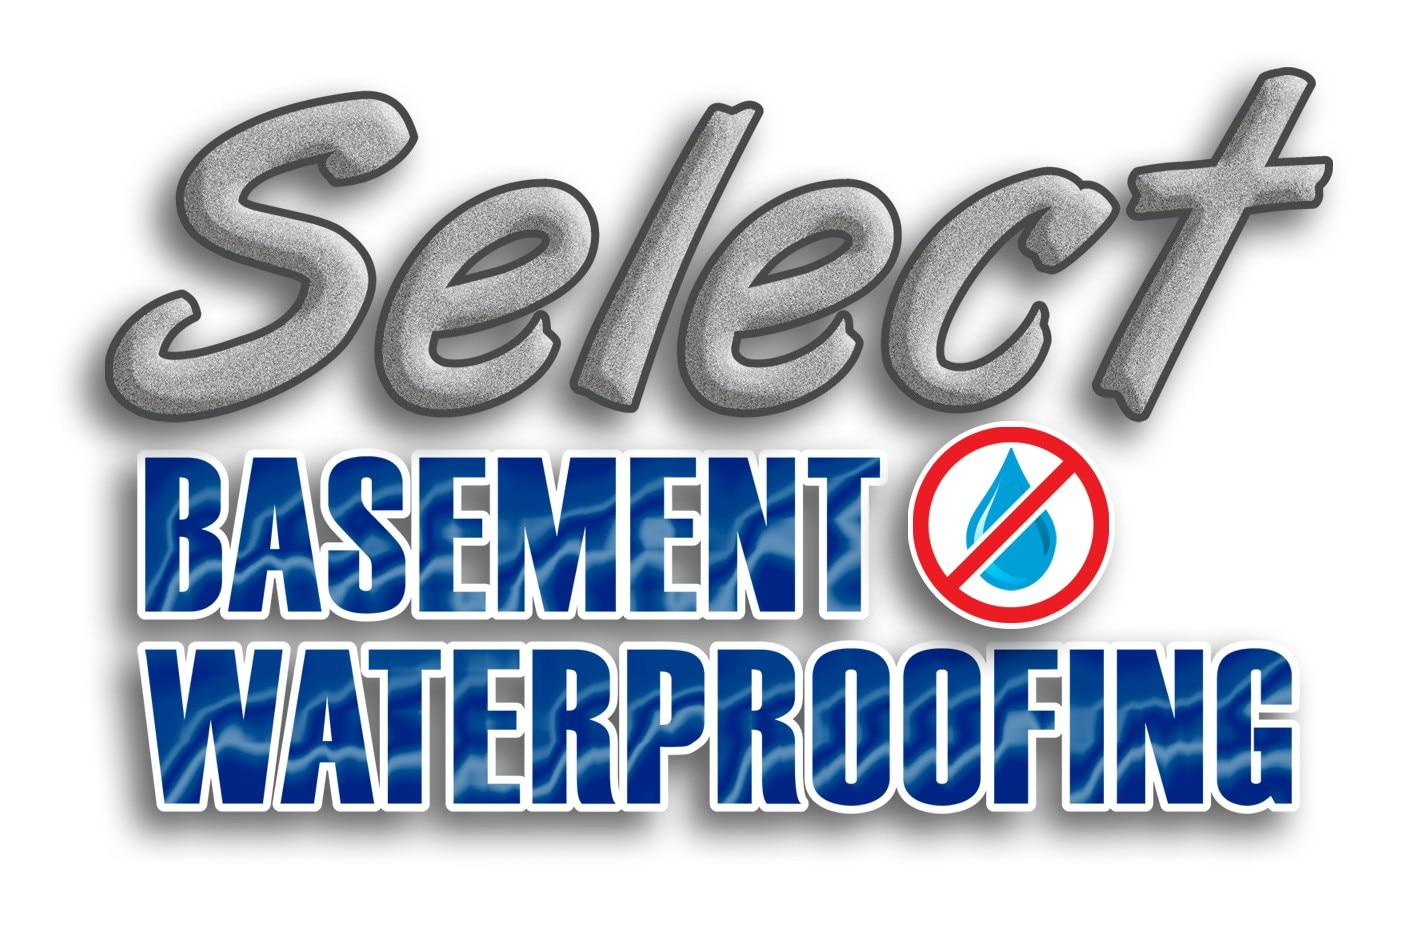 Select Basement Waterproofing Inc logo